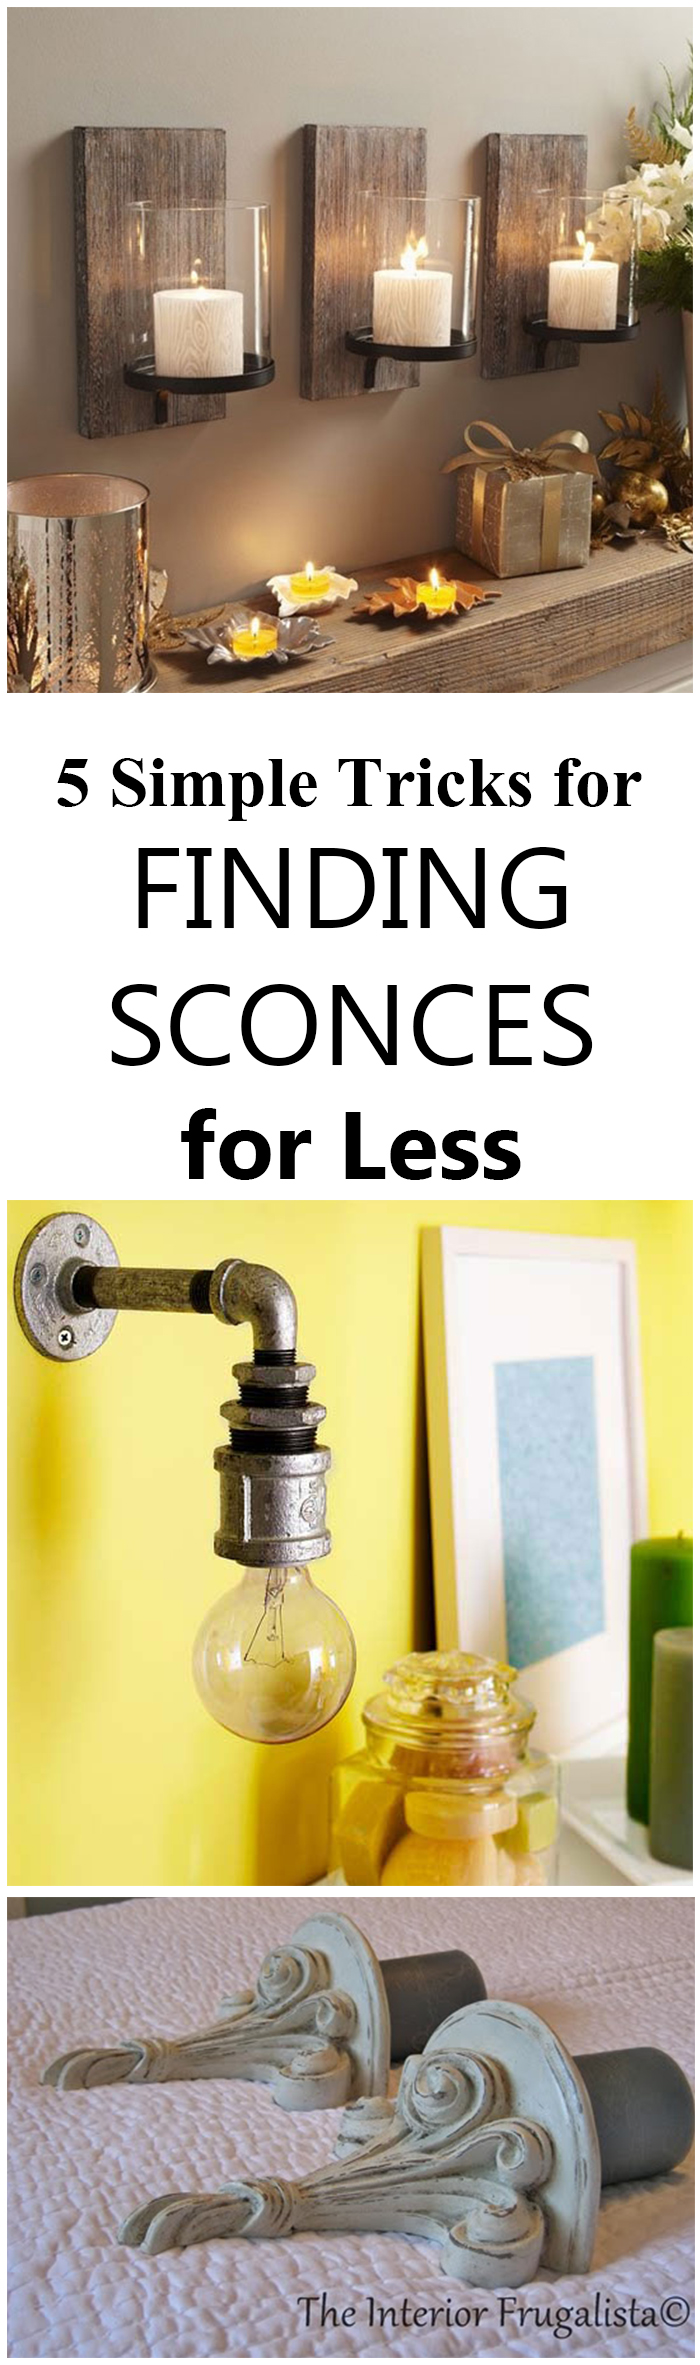 5 Simple Tricks for Finding Sconces for Less